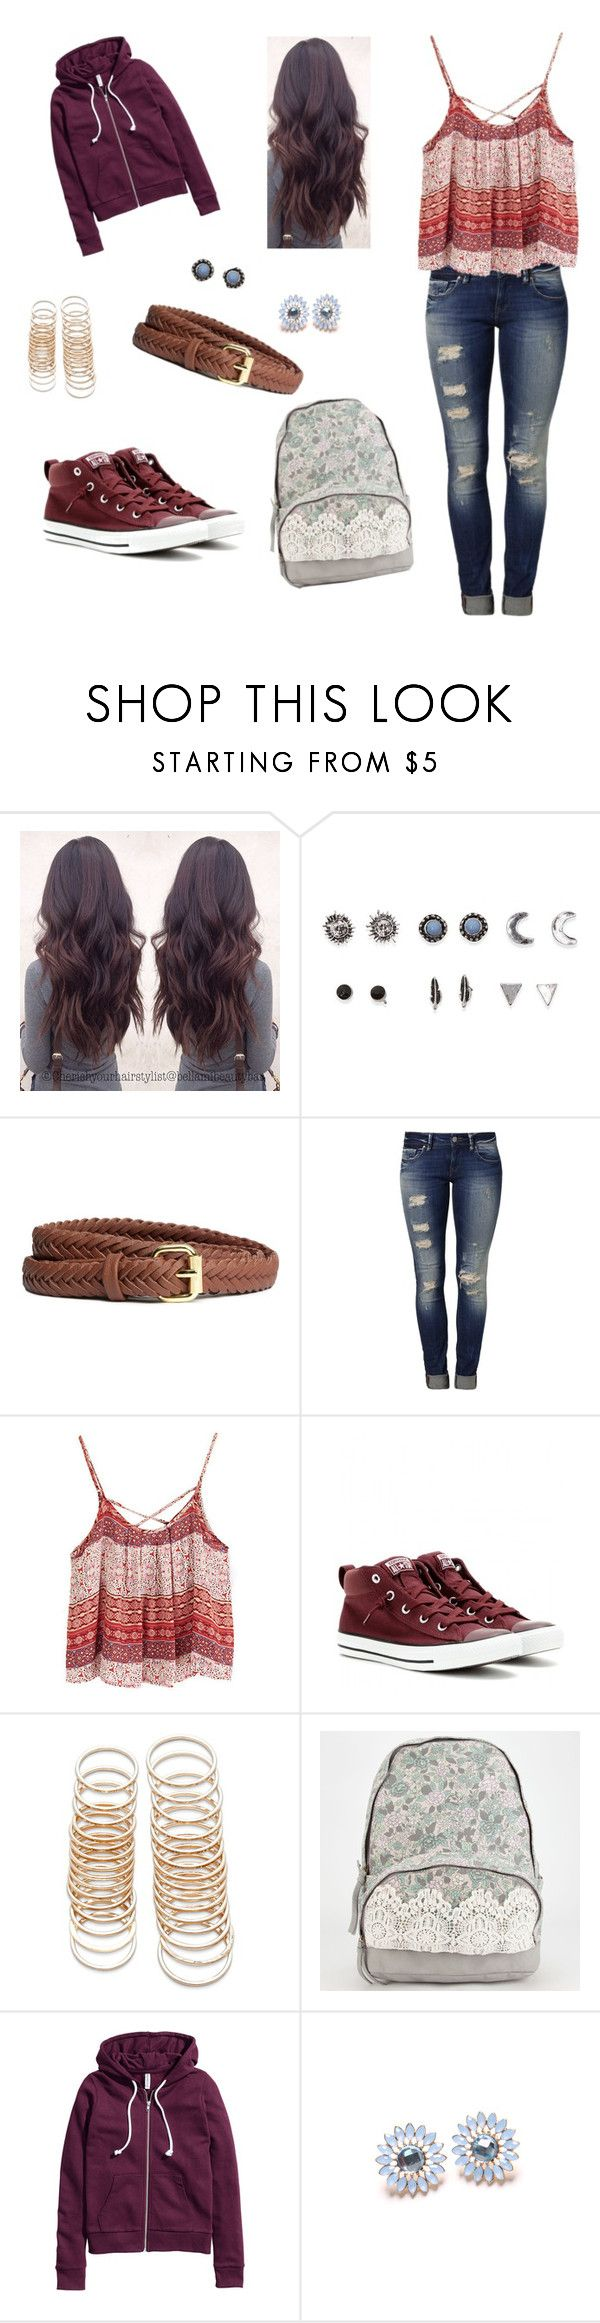 """school"" by spring-roll ❤ liked on Polyvore featuring With Love From CA, H&M, Mavi, Converse and Forever 21"